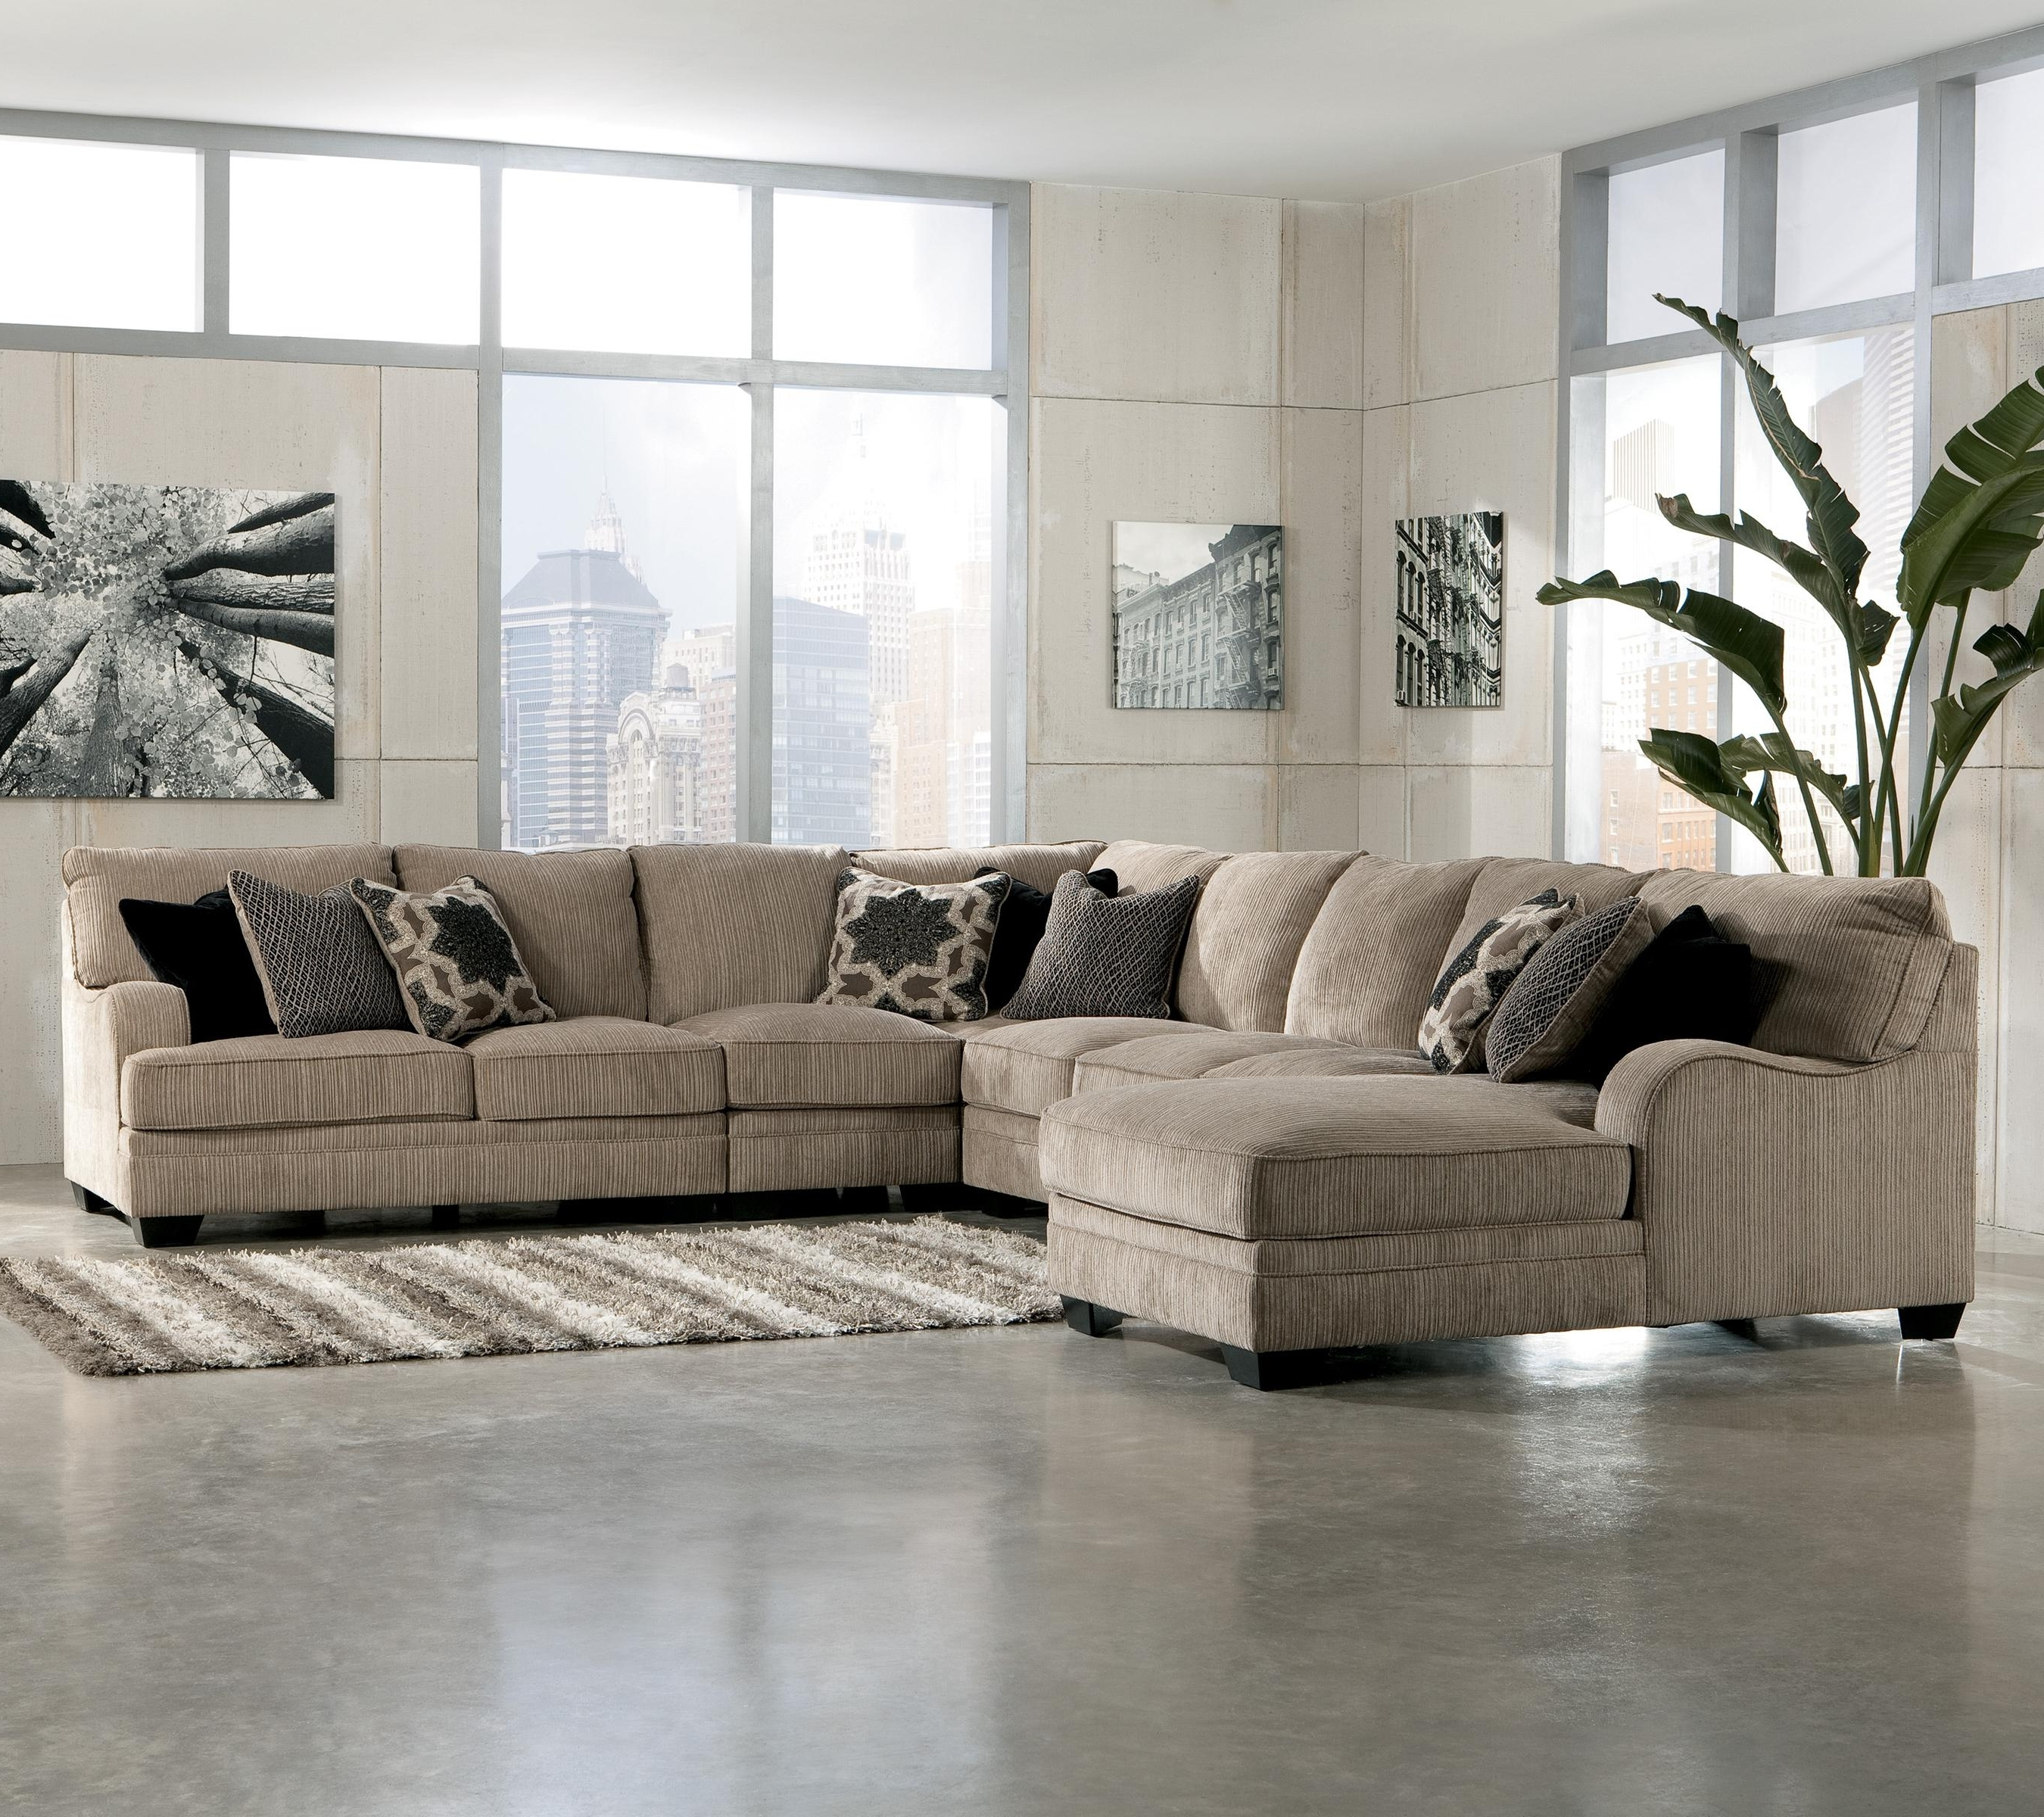 Furniture: Luxury Ashley Furniture Savannah Ga Ashley Furniture With Regard To Most Up To Date Sectional Sofas In Savannah Ga (View 11 of 20)